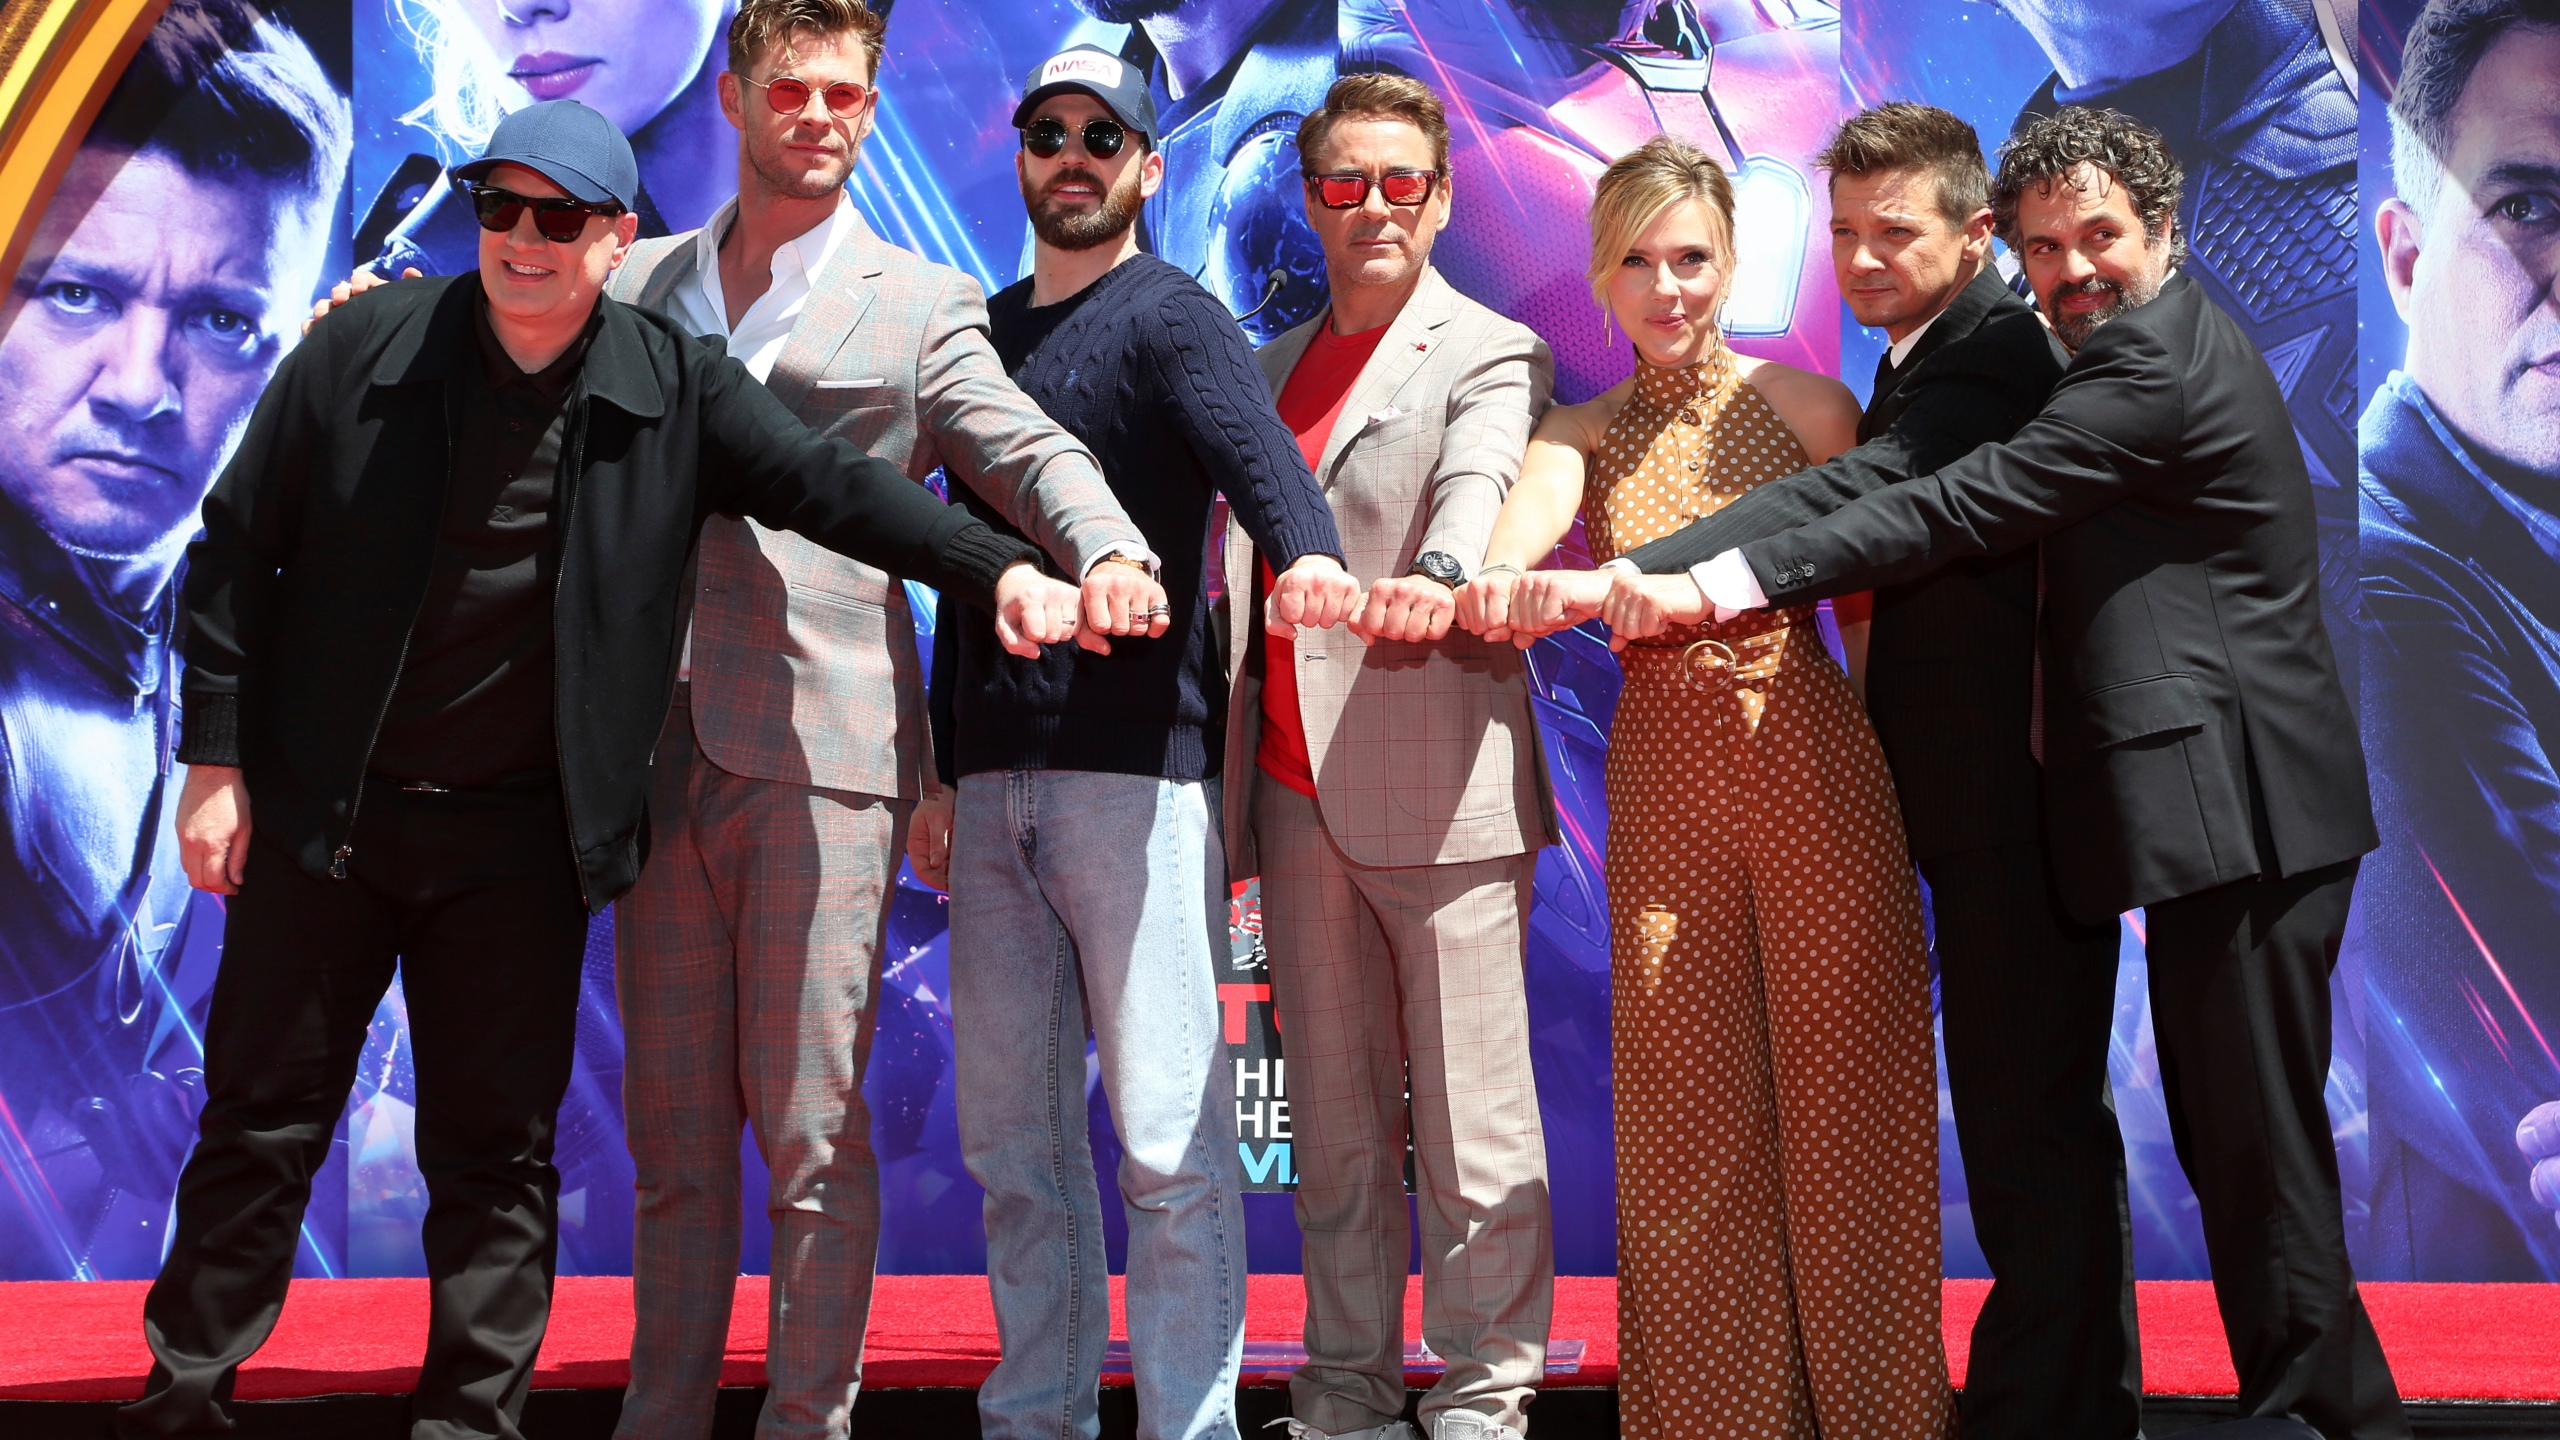 The_Cast_of__Avengers__End_Game__Hand_and_Footprint_Ceremony_76329-159532.jpg98425366